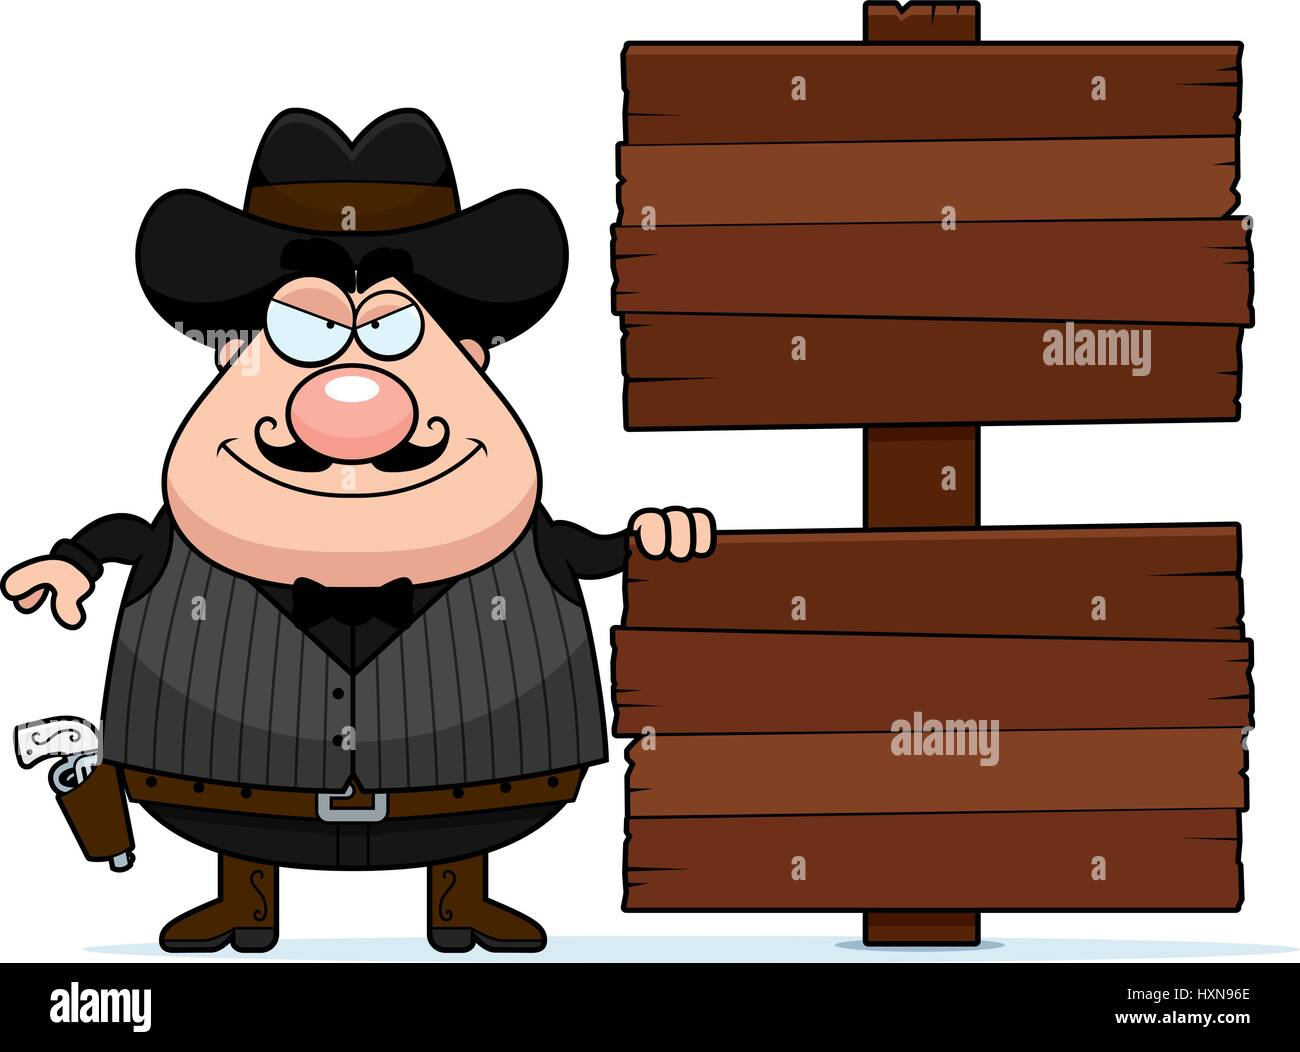 A cartoon illustration of a gunfighter with a wooden sign